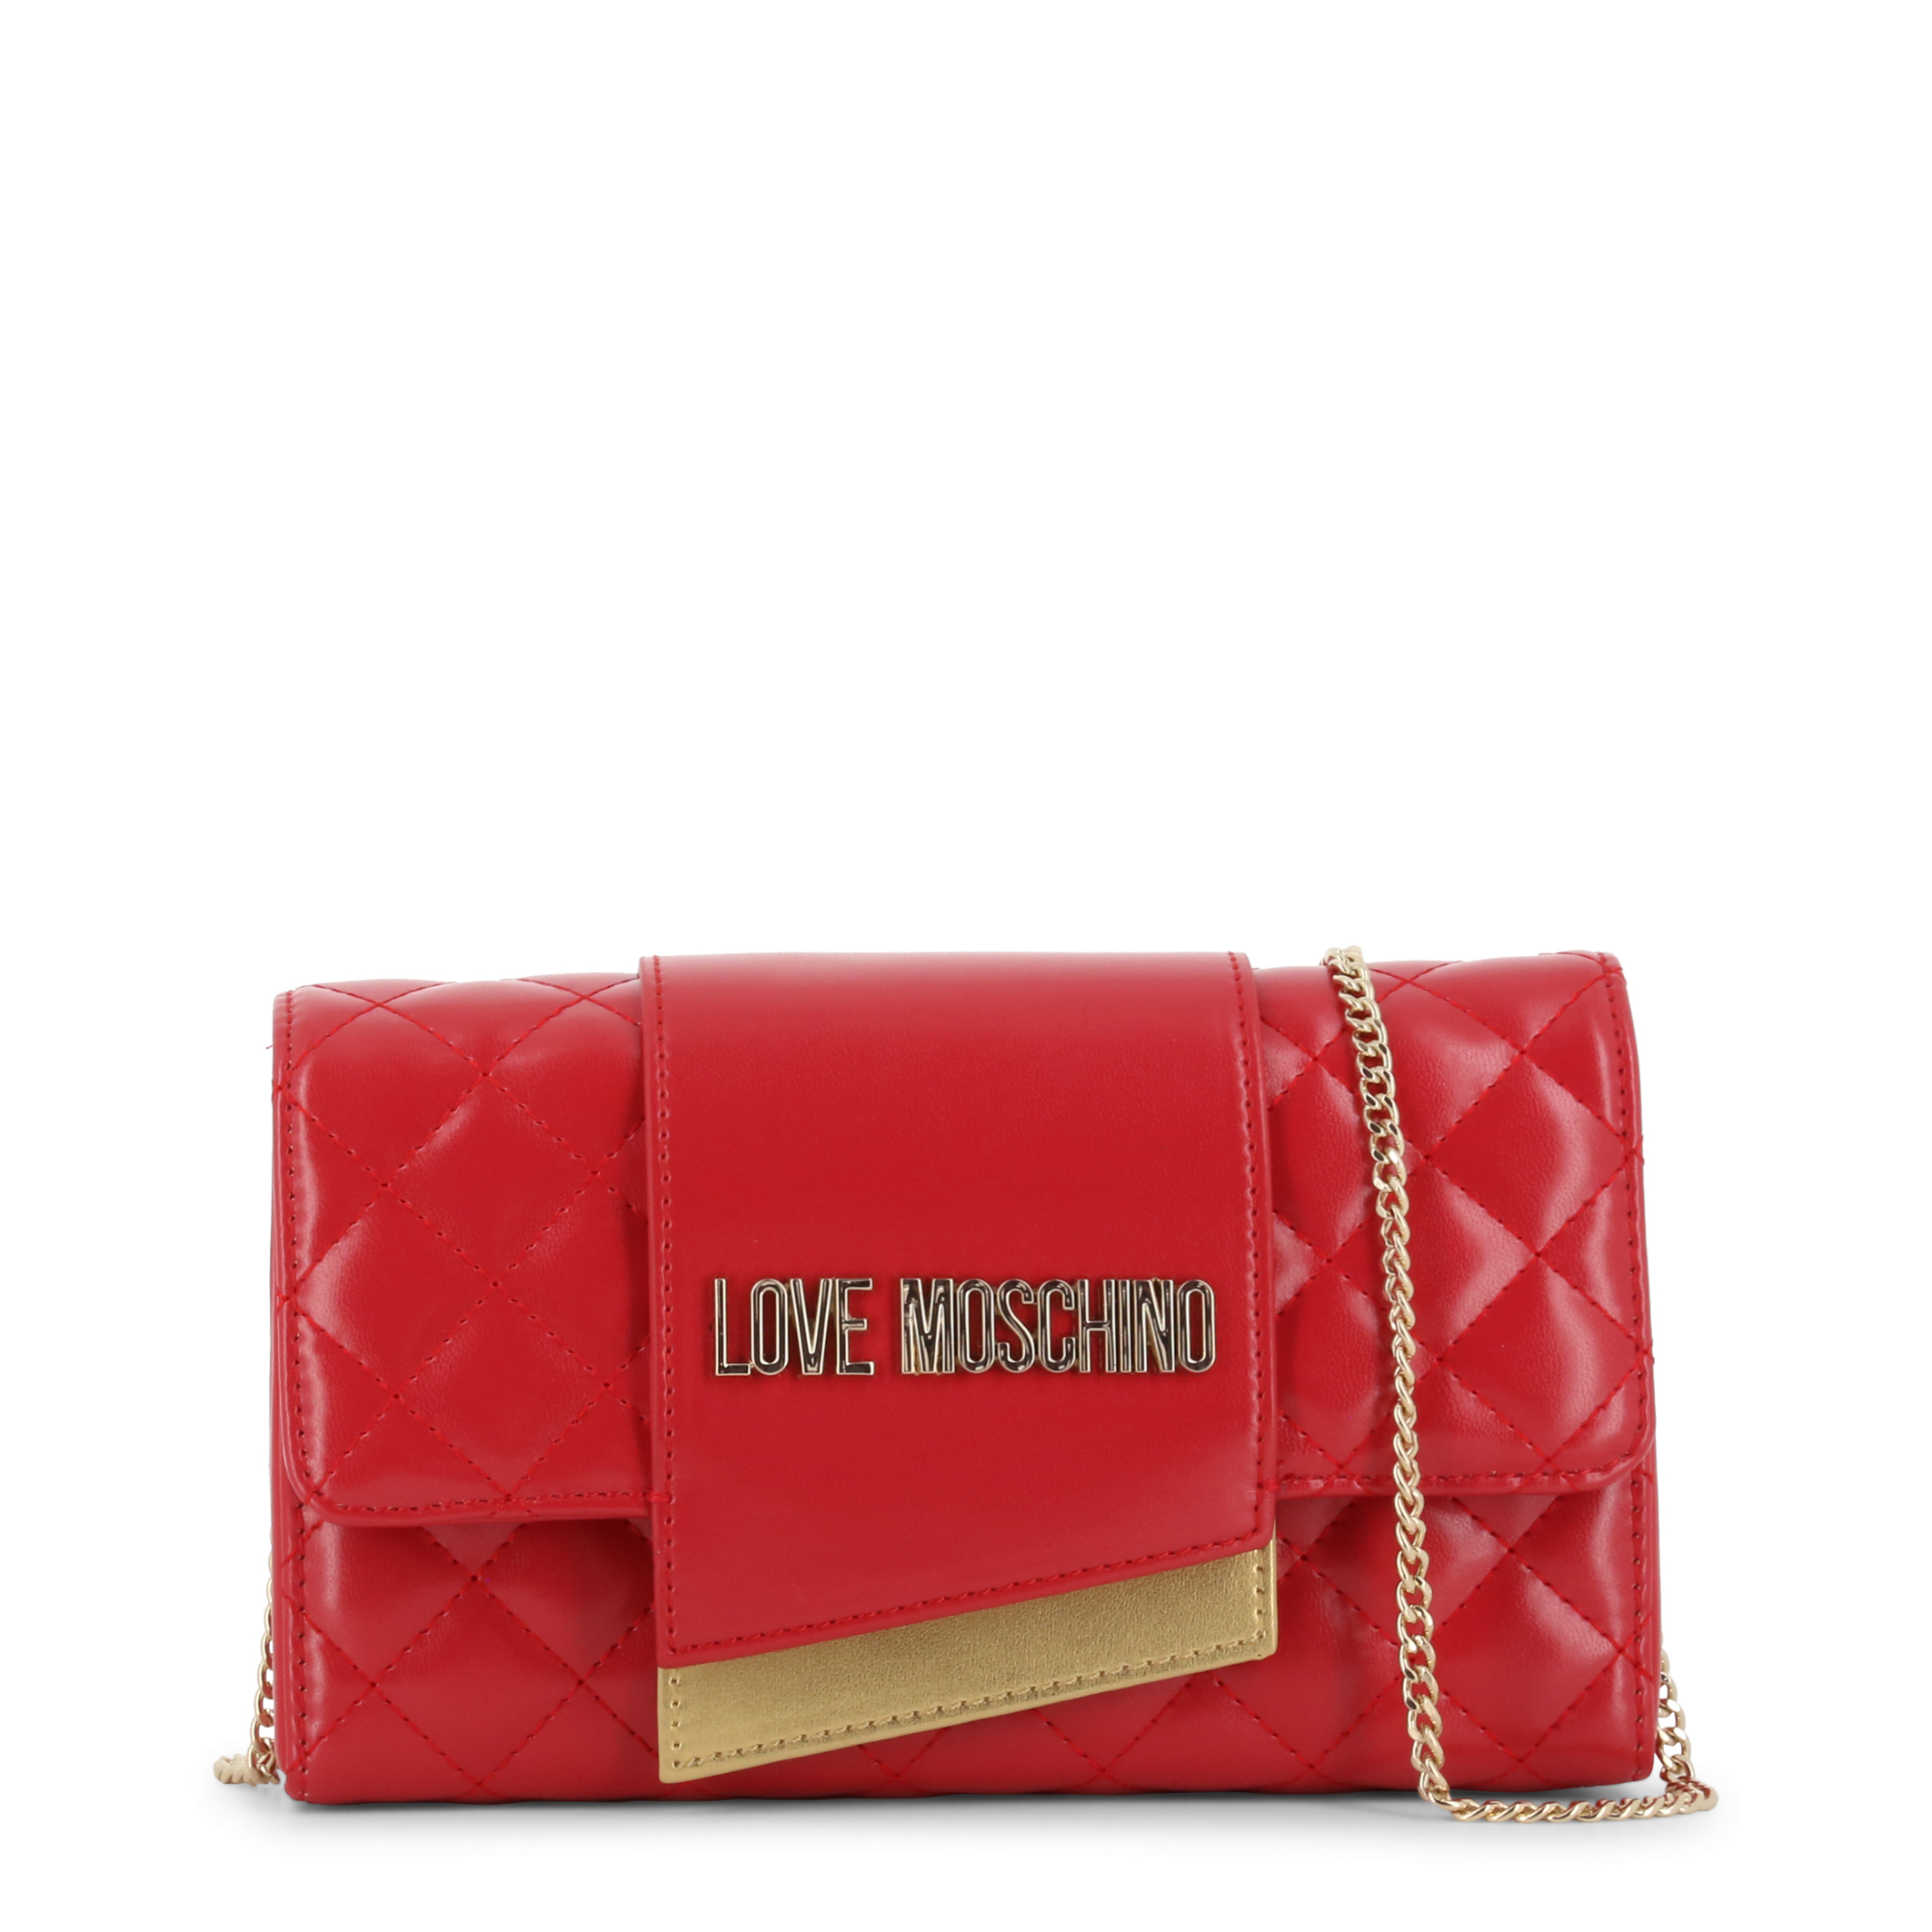 Bandoulière Moschino Moschino Sac Love Love Sac Bandoulière Rouge Rouge W29eHEIDY